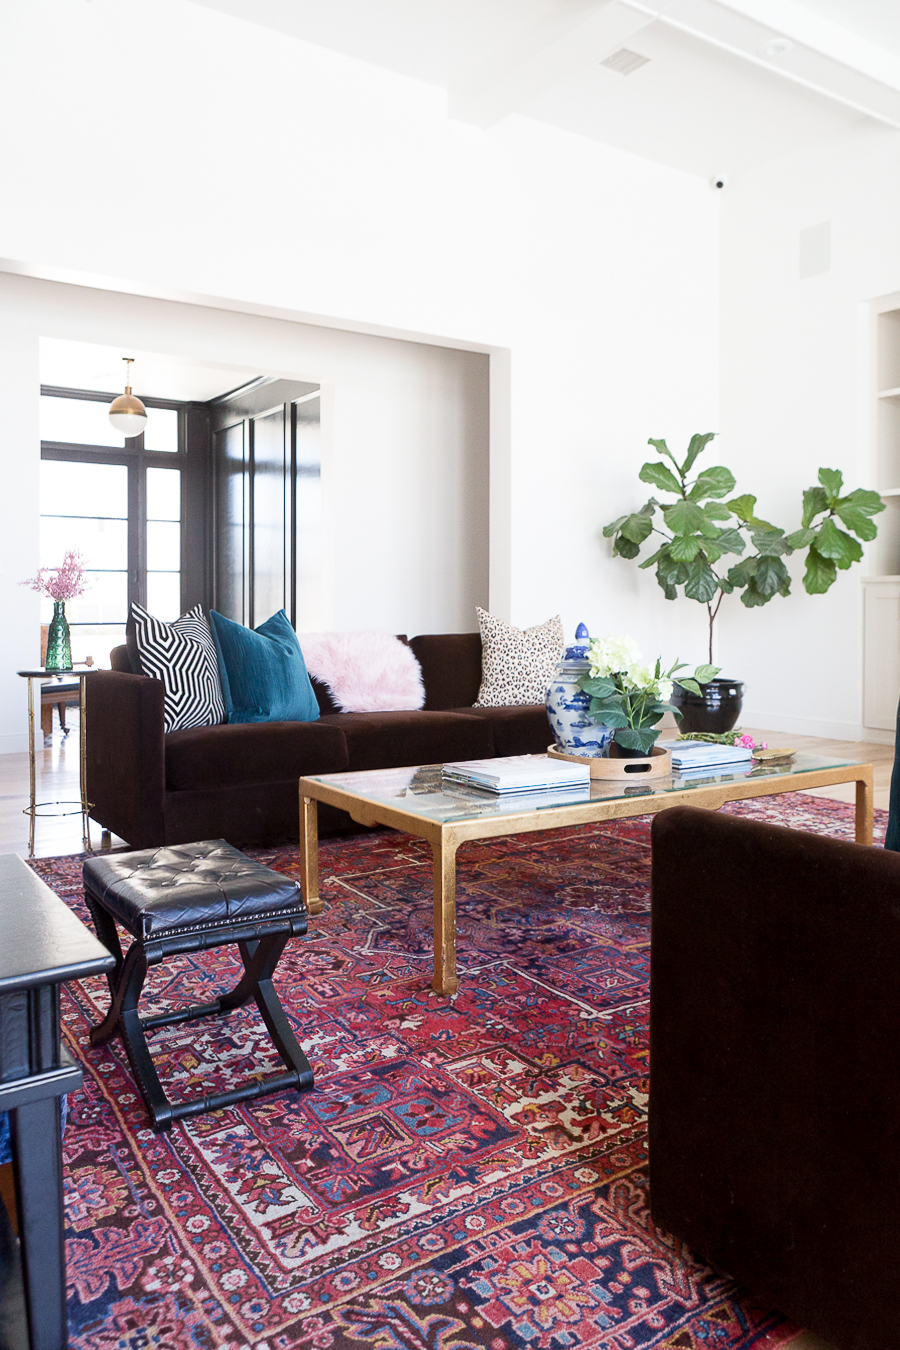 HOW TO FIND BLACK WINDOWS AND DOORS FOR LESS surrounding the front door and leading into eclectic living room with a vintage rug and fig leaf tree